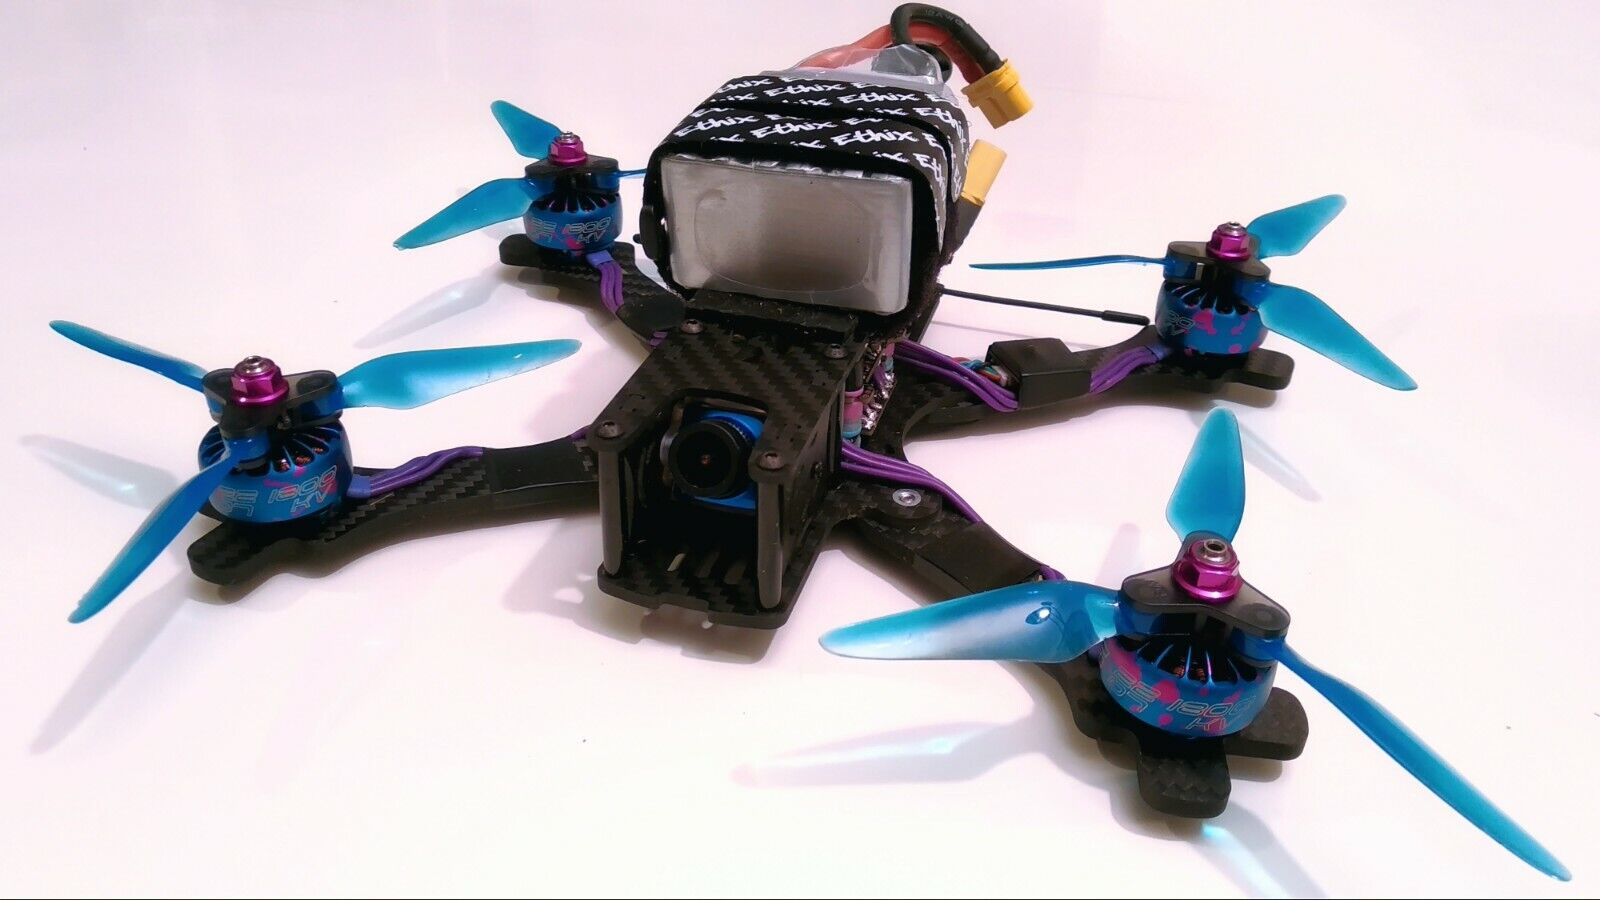 Custom FPV Drone Building/Repair Service (Please read the description)